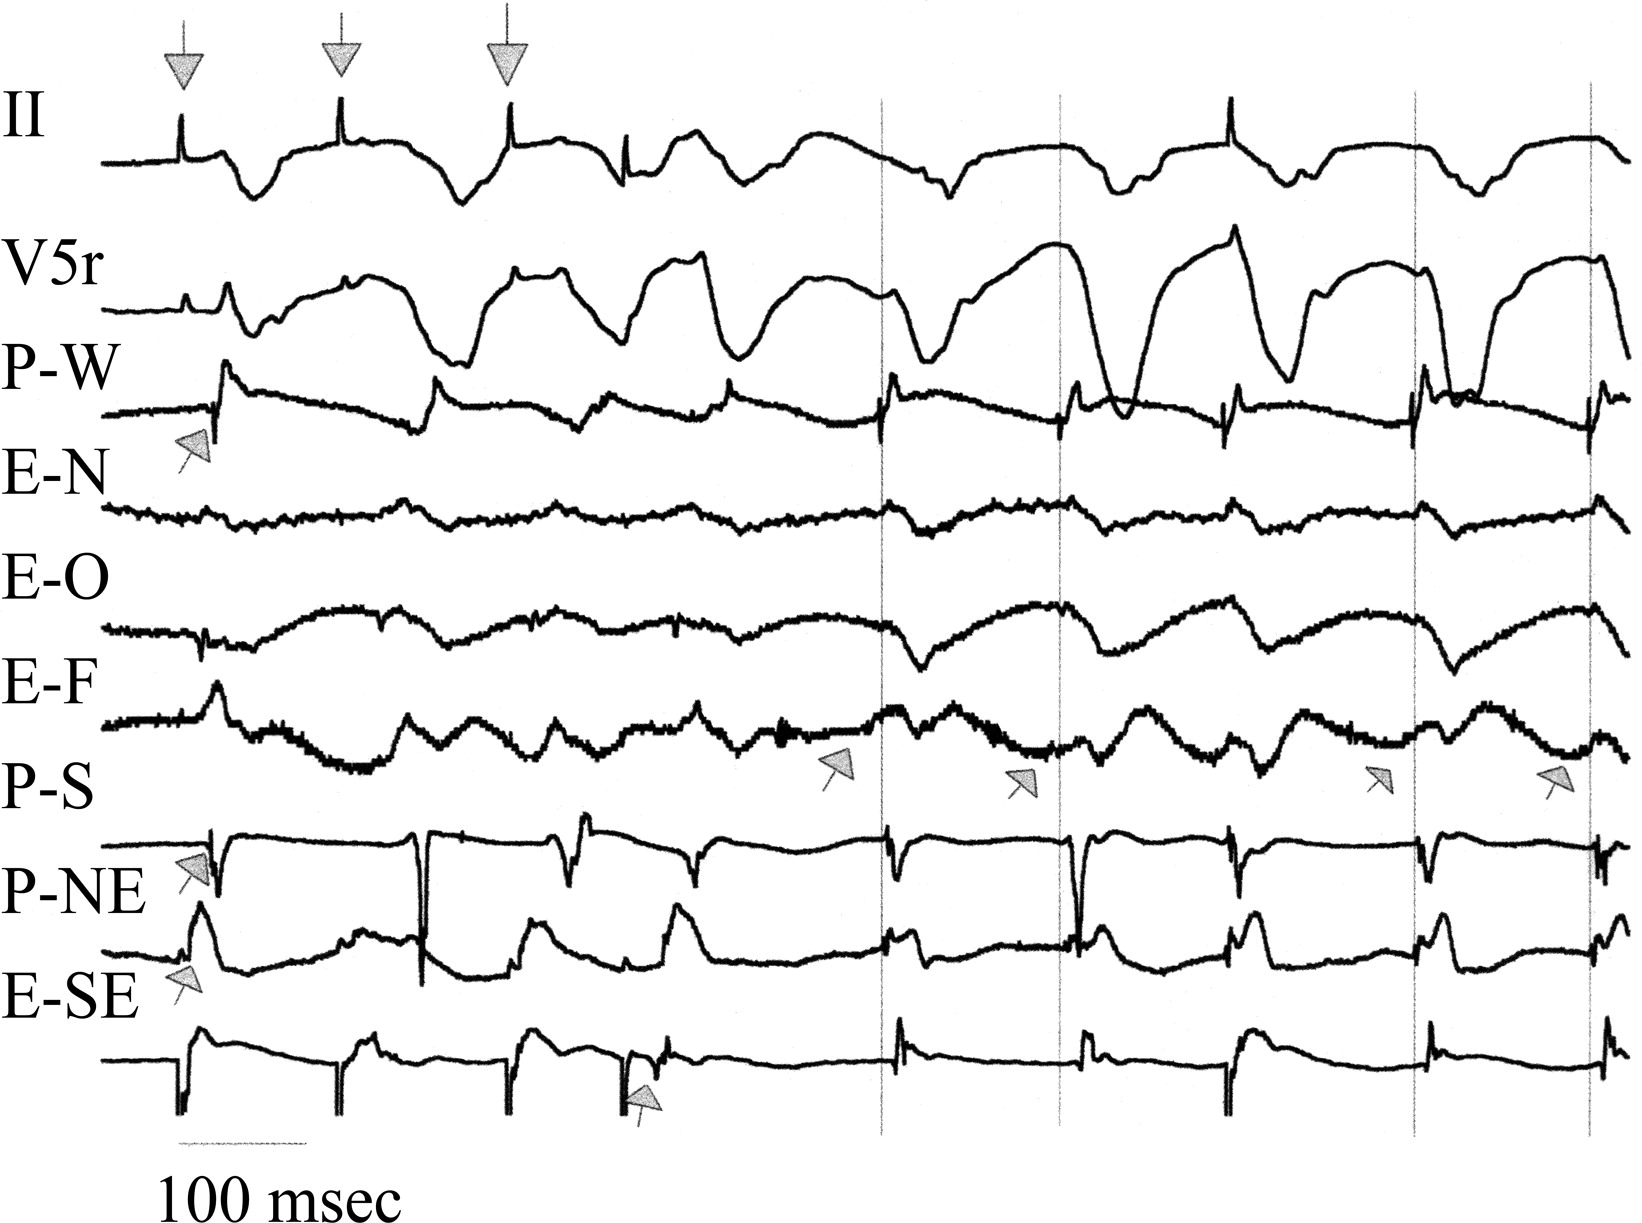 Lovastatin Specifically Prevents Focal Ischemic Ventricular Tachycardia Due To Triggered